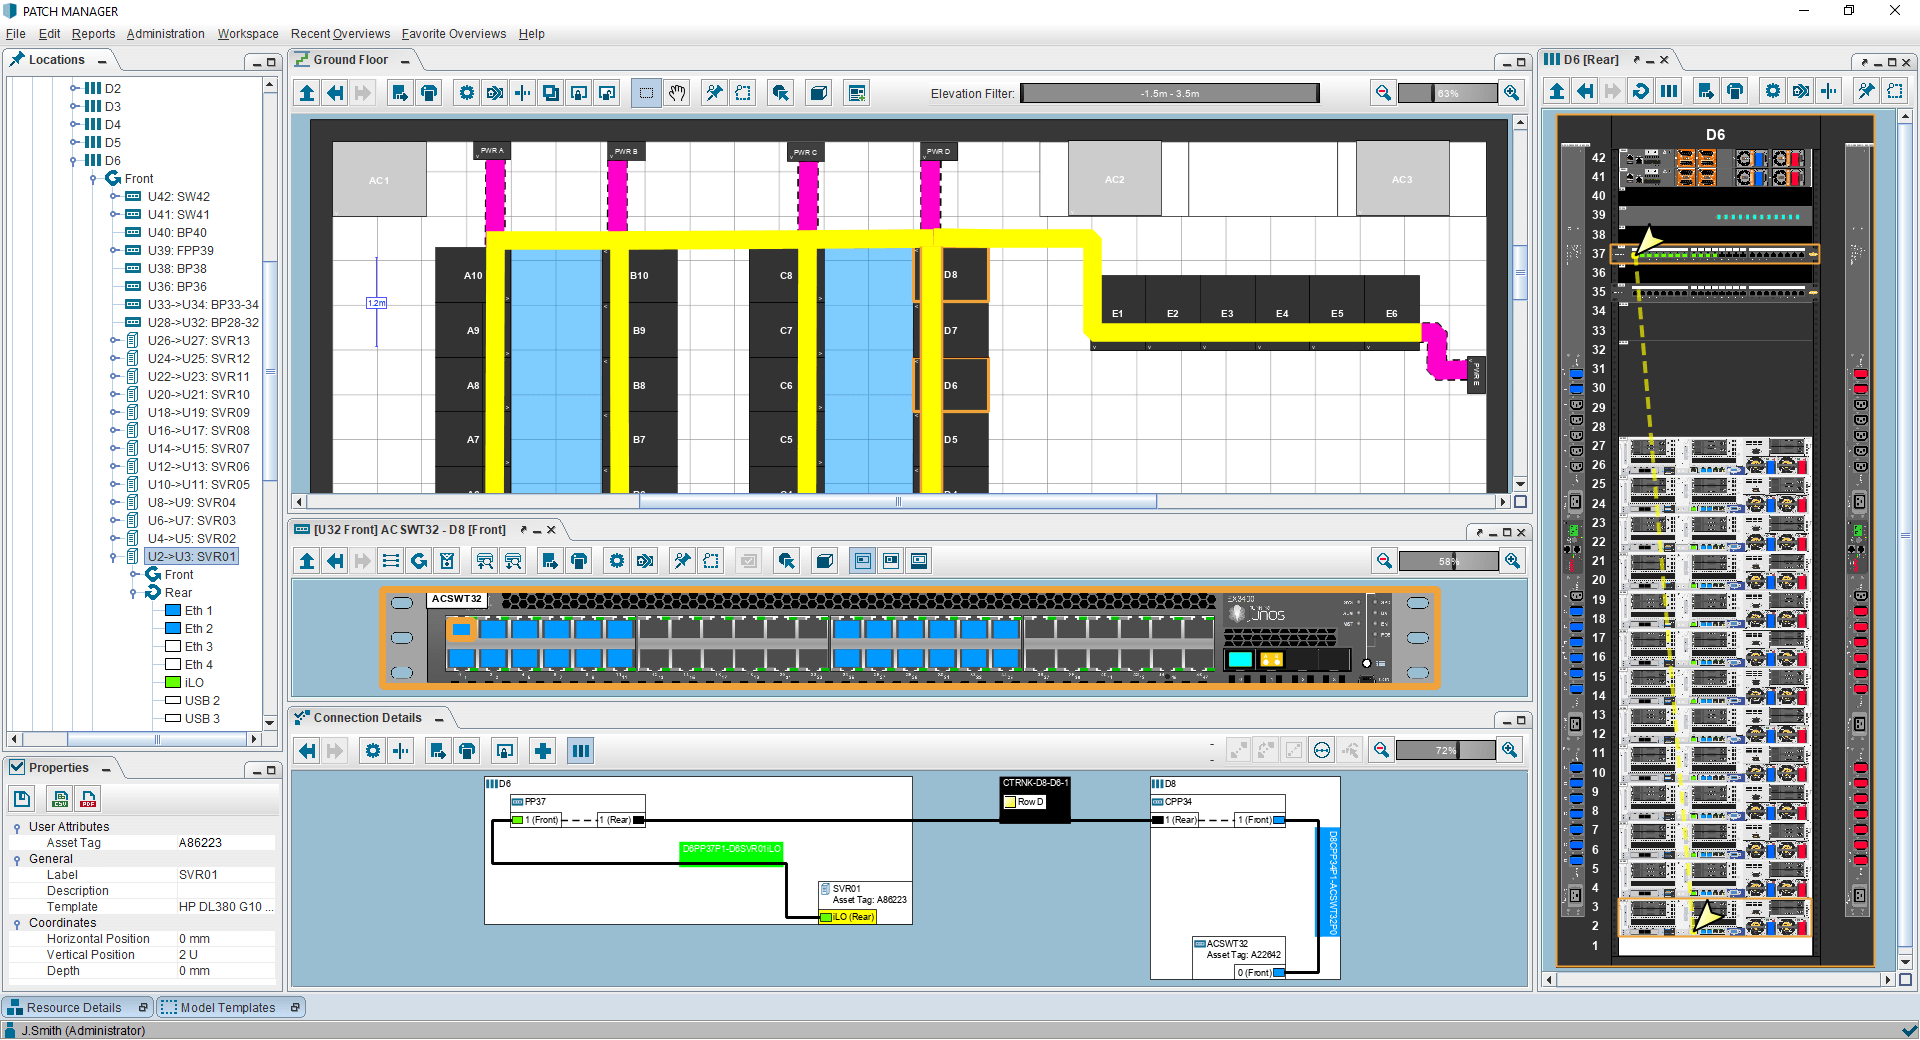 PATCH MANAGER data center connection tracing